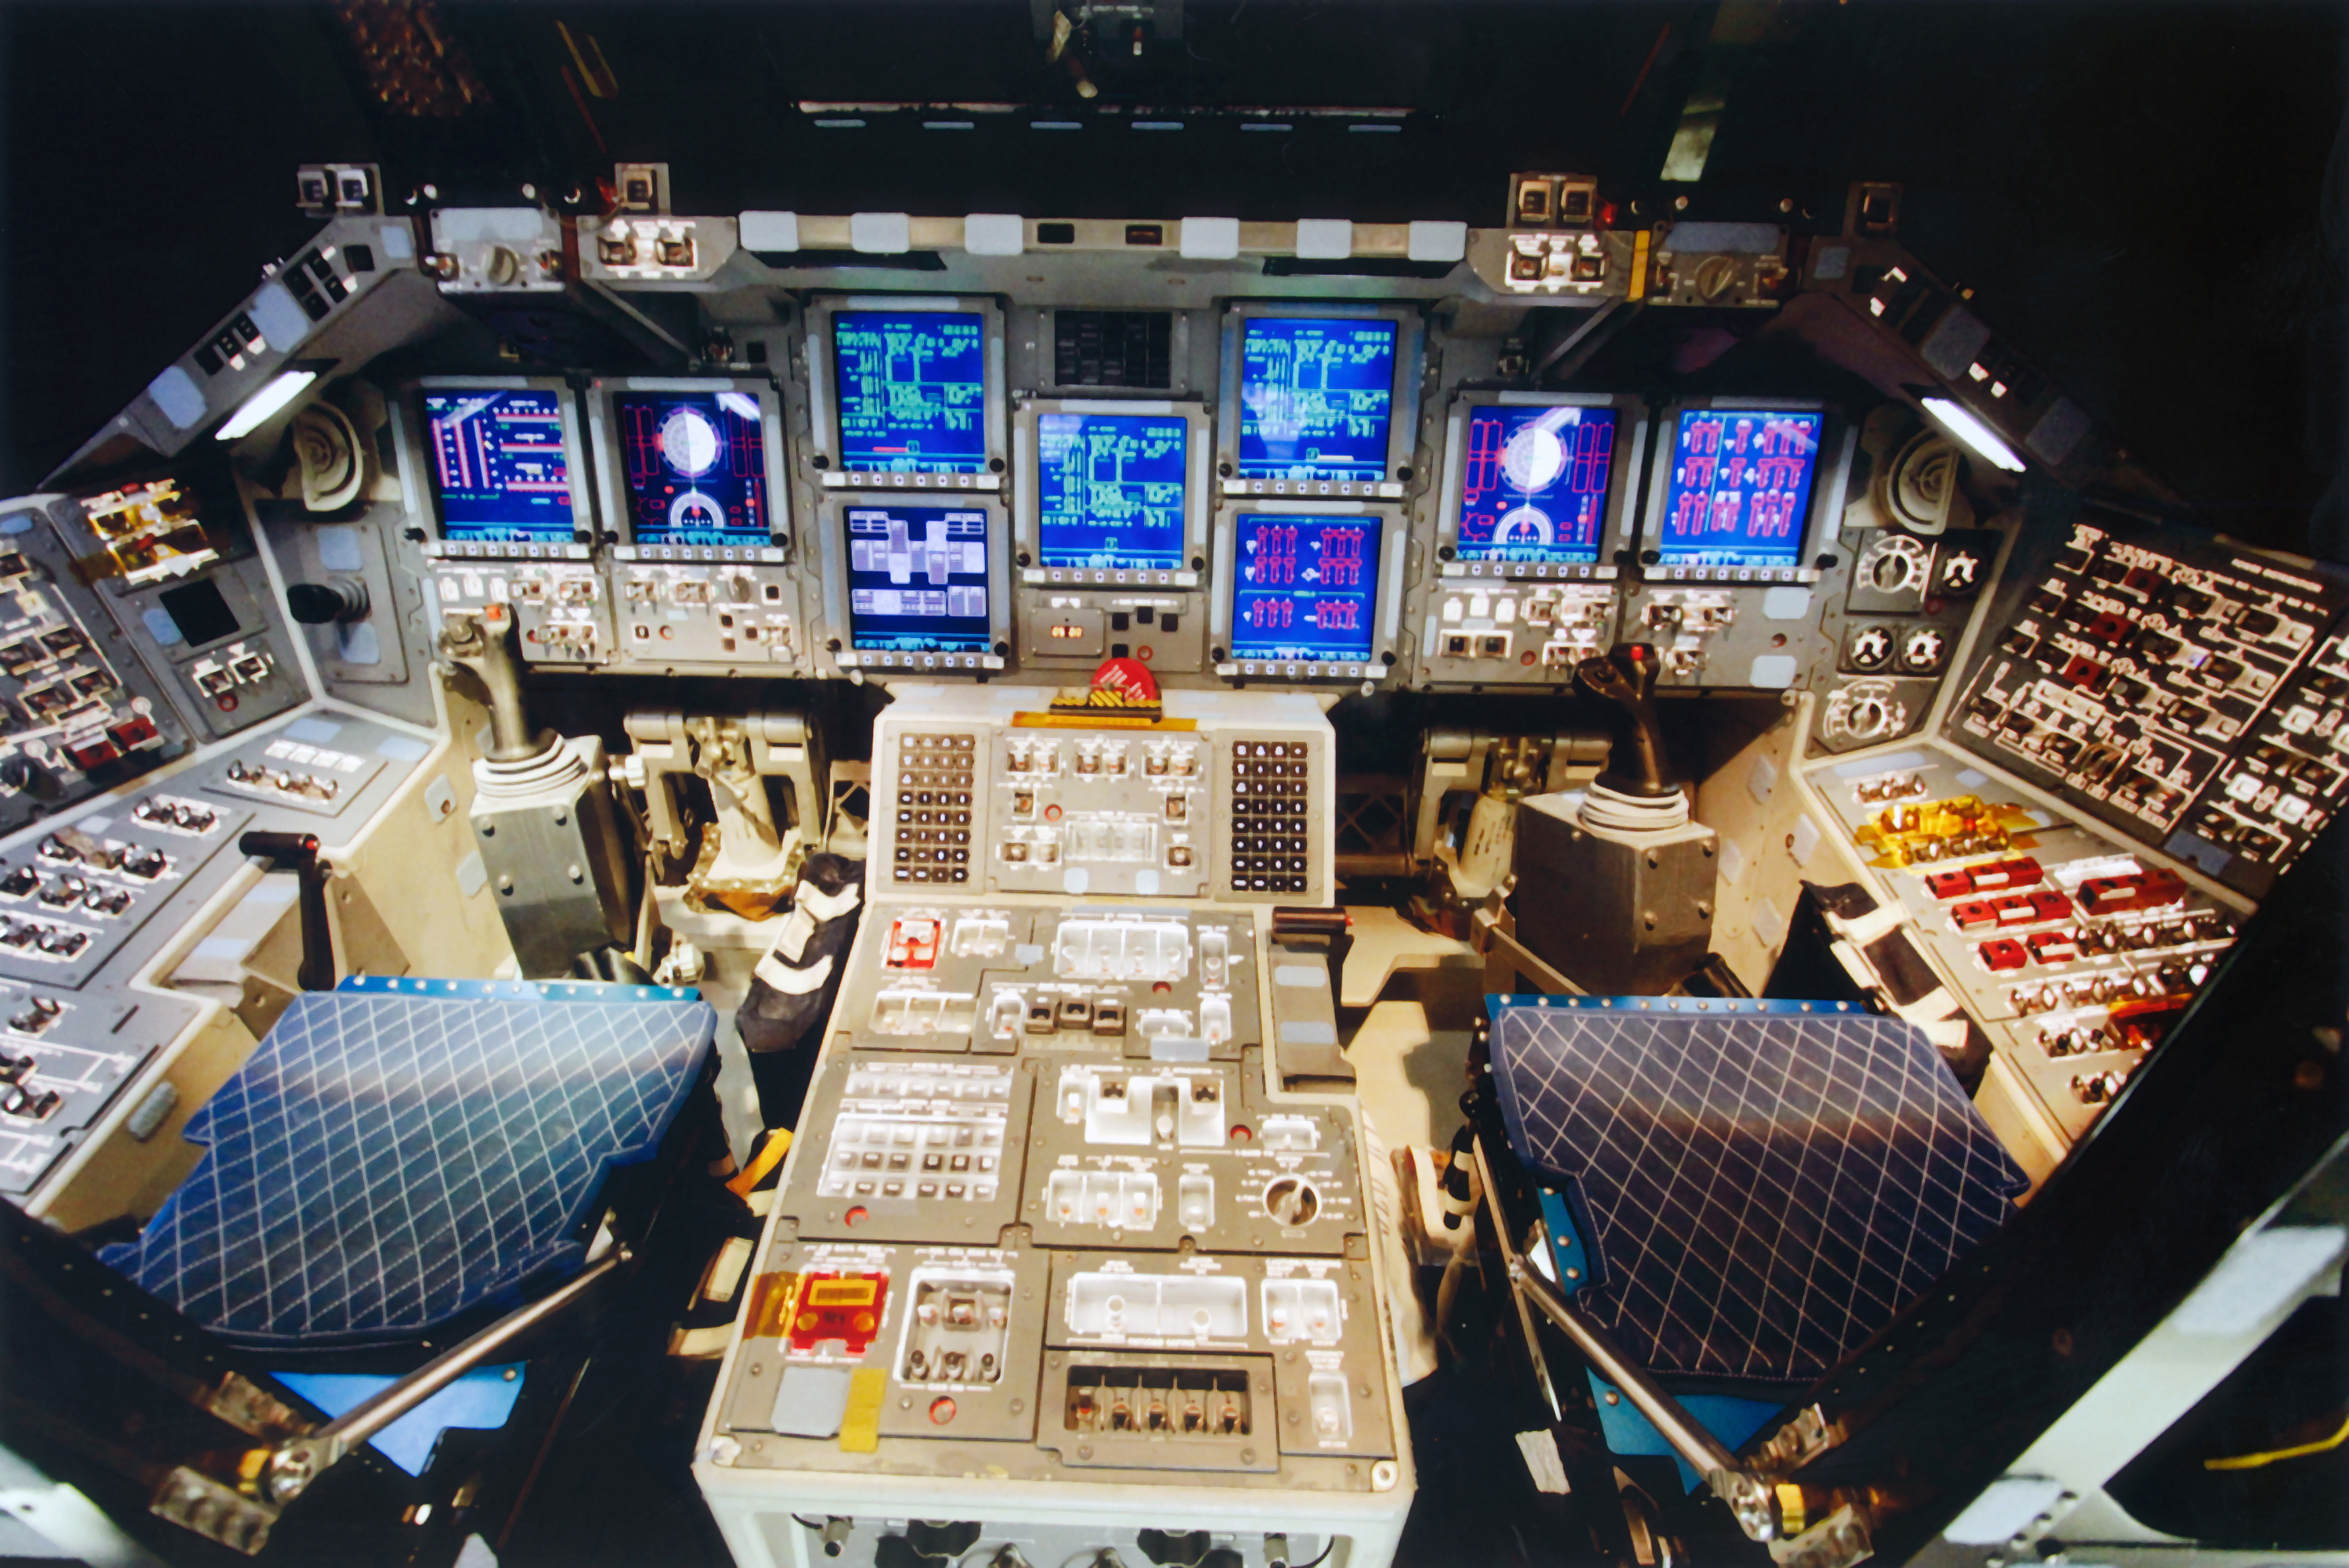 boeing spacecraft cockpits-#47